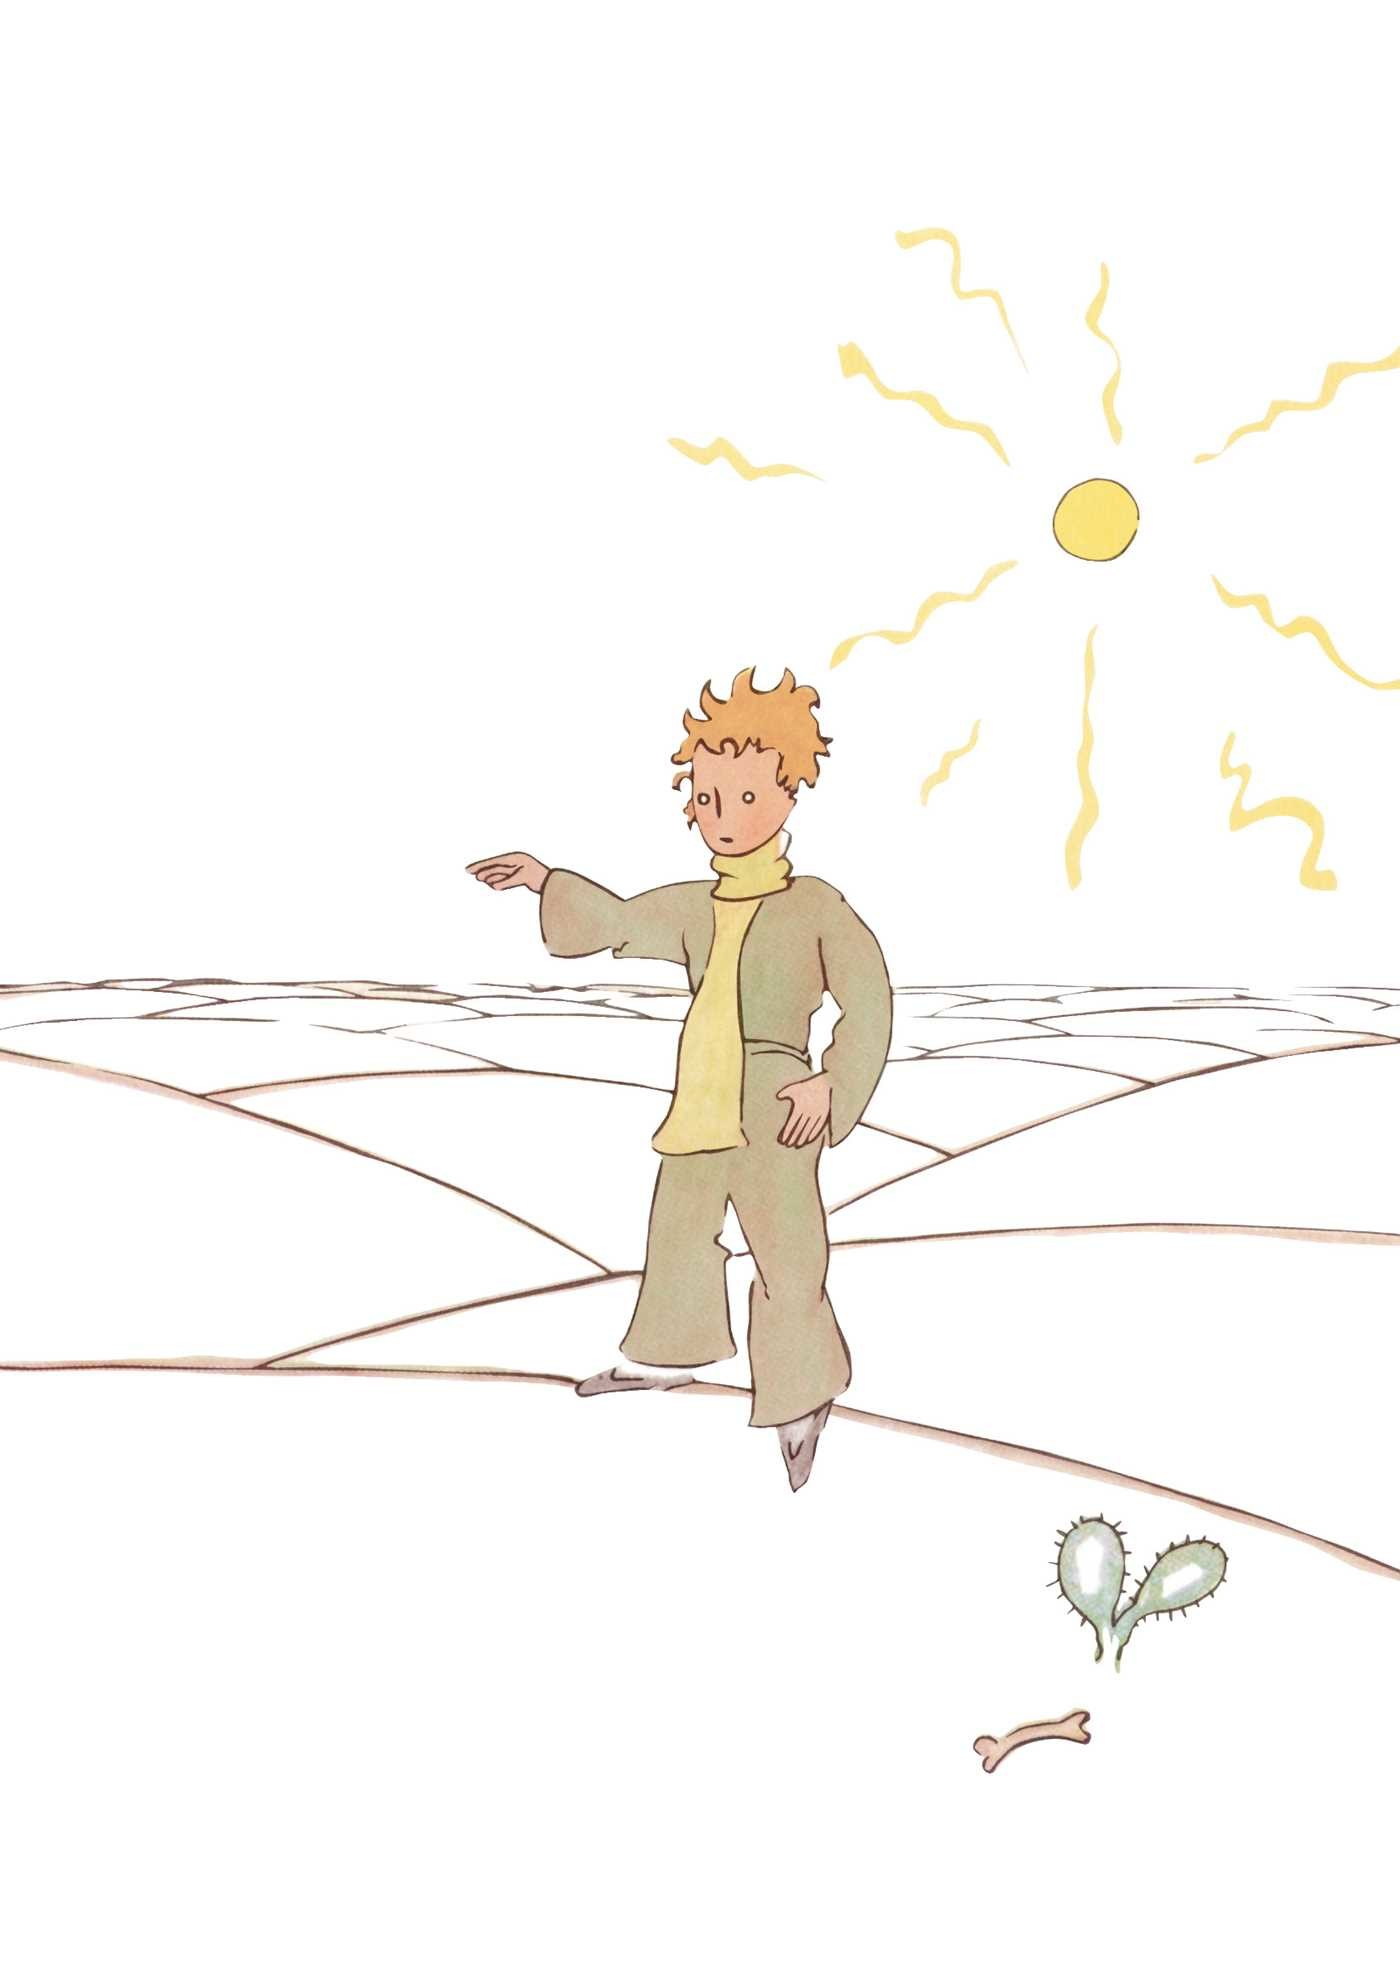 The little prince 9782374950136.in04